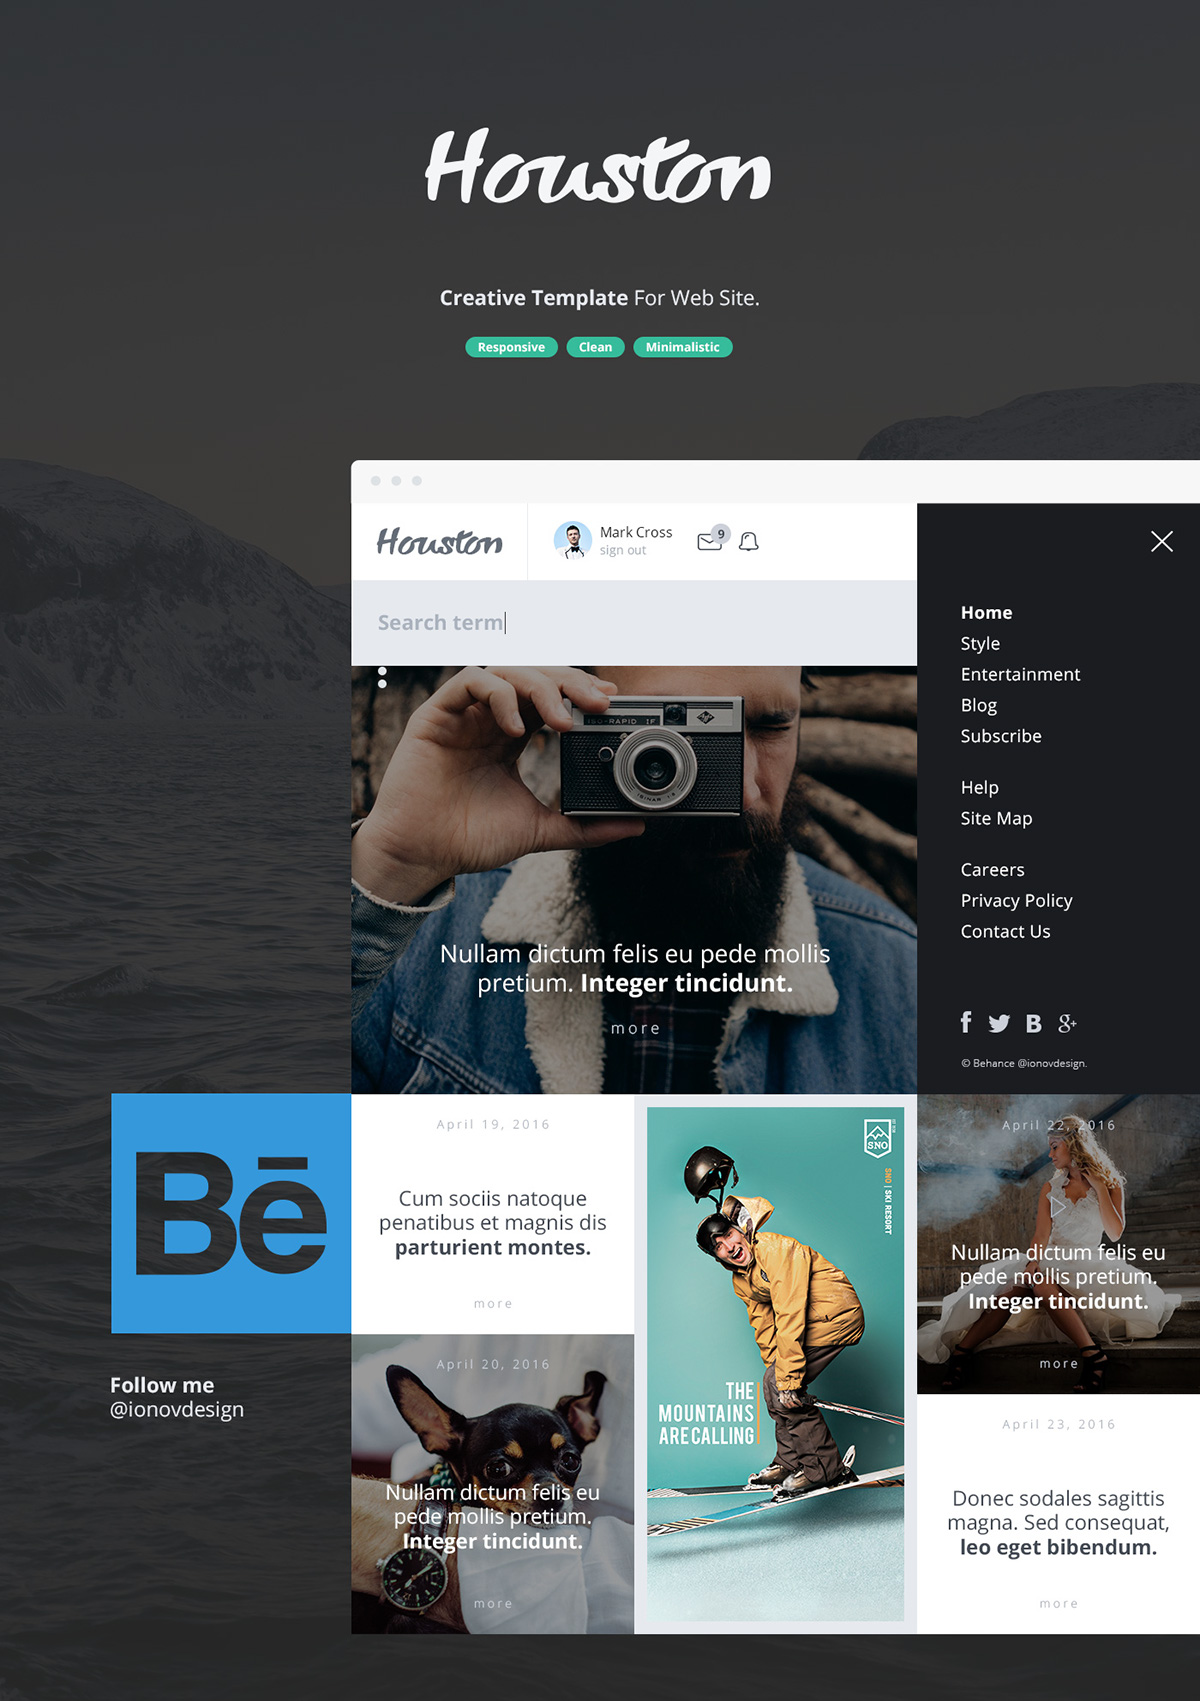 Houston Creative Template For Web Site On Pantone Canvas Gallery